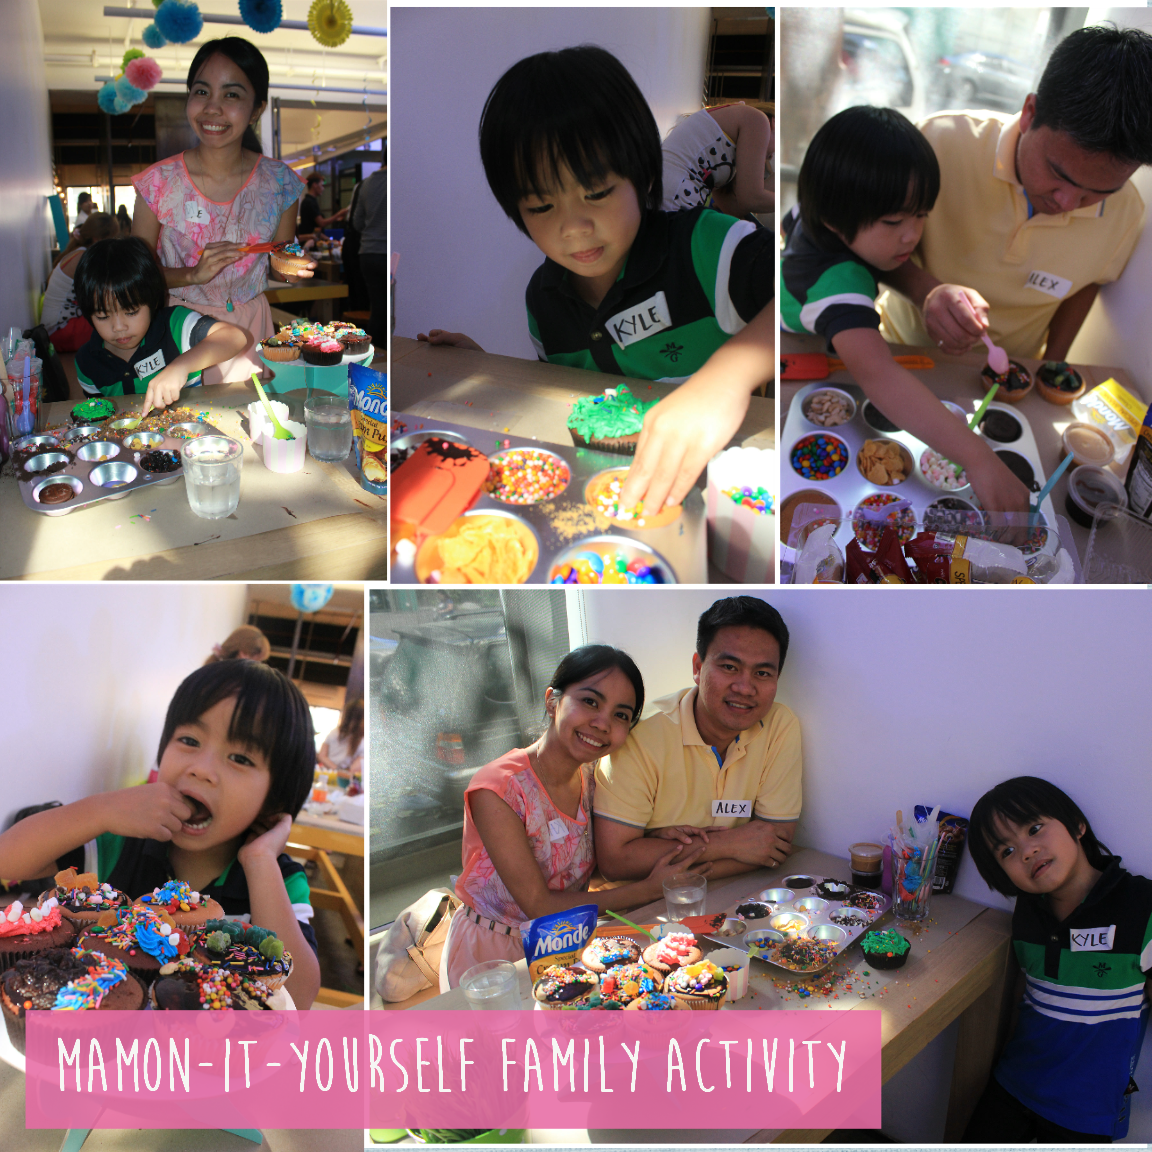 mamon it yourself family bonding